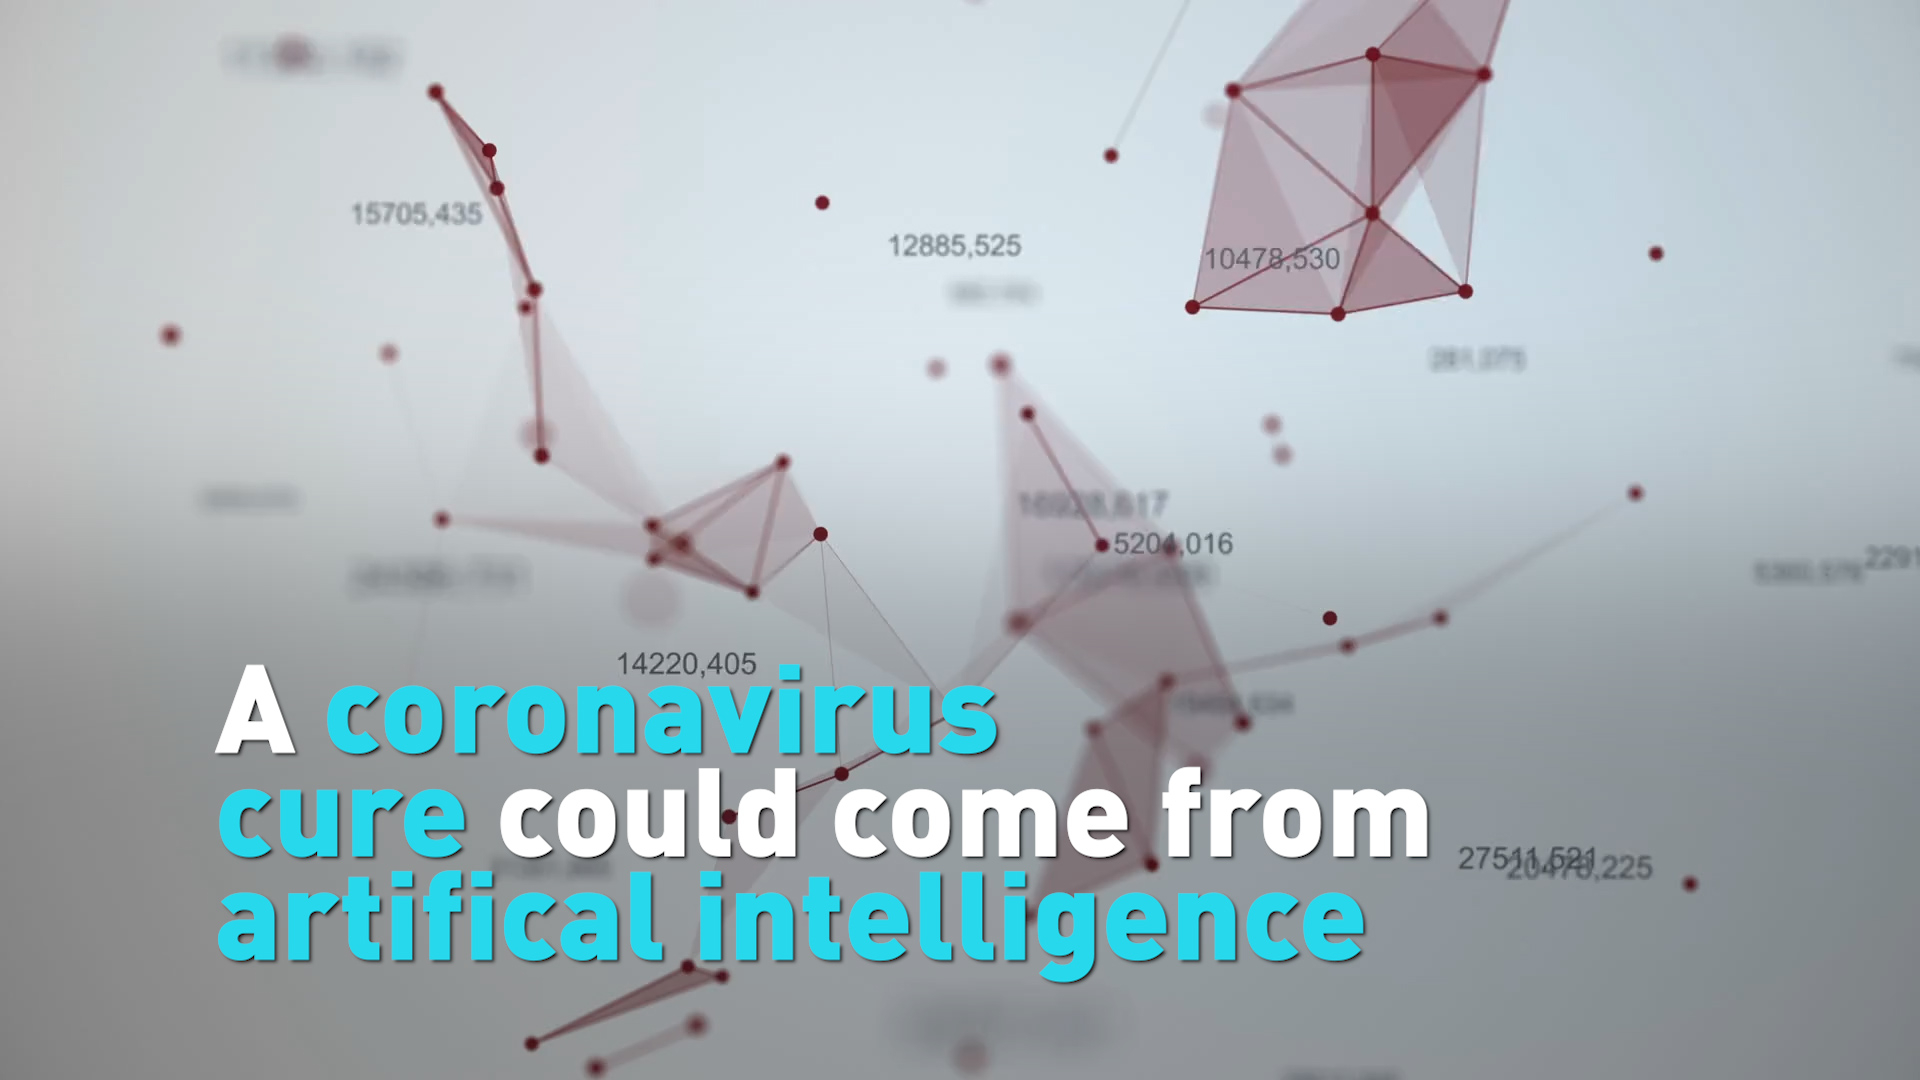 A coronavirus cure could come from artificial intelligence